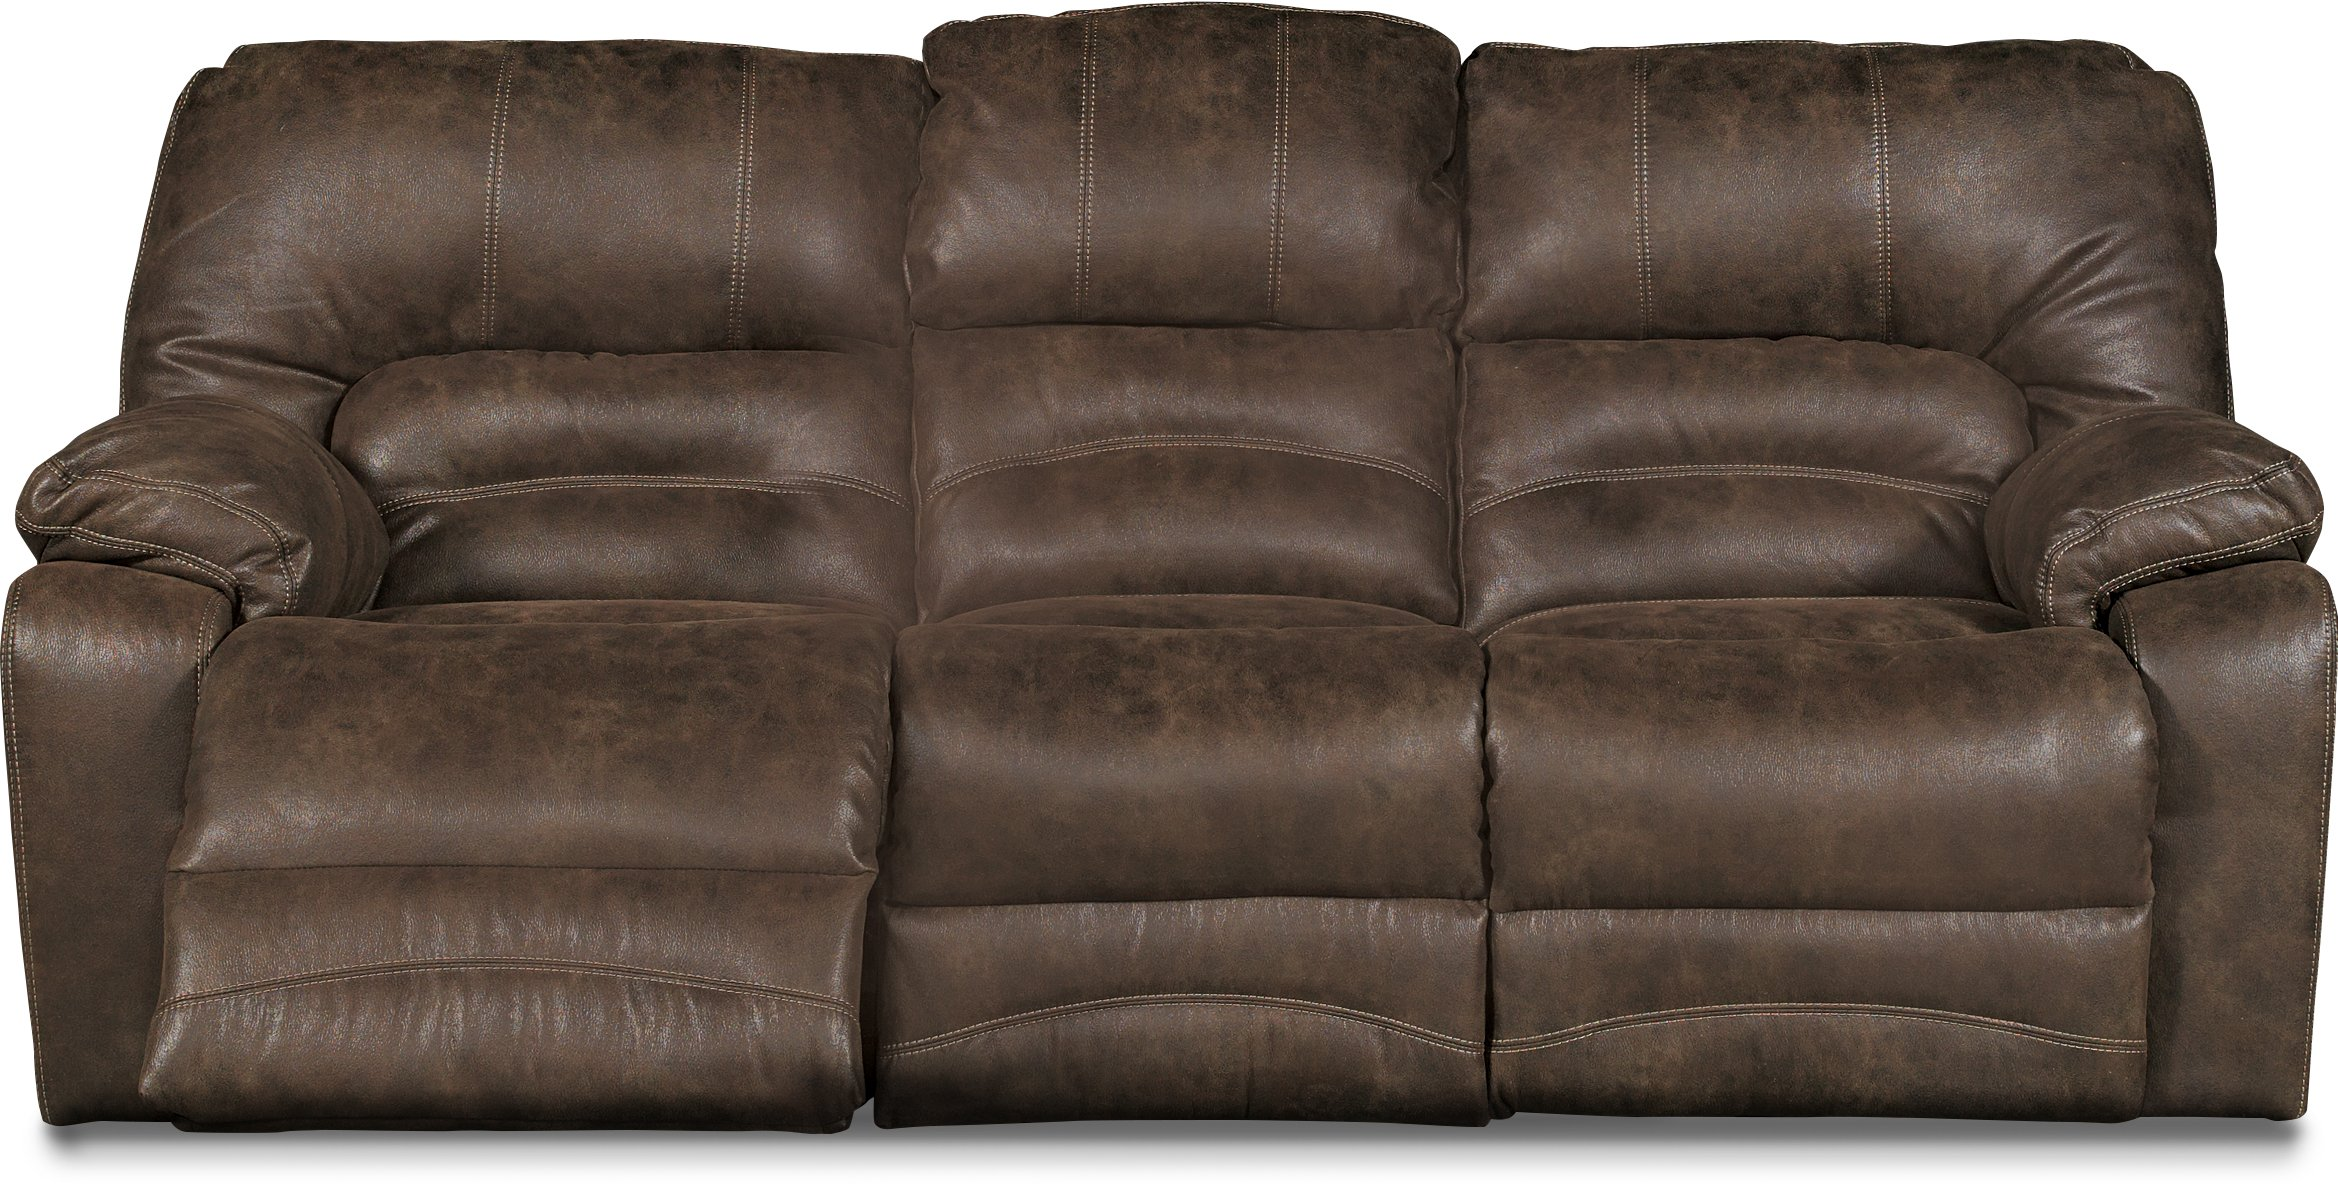 Brown microfiber recliner 28 images flash furniture am for Chocolate brown microfiber sectional sofa